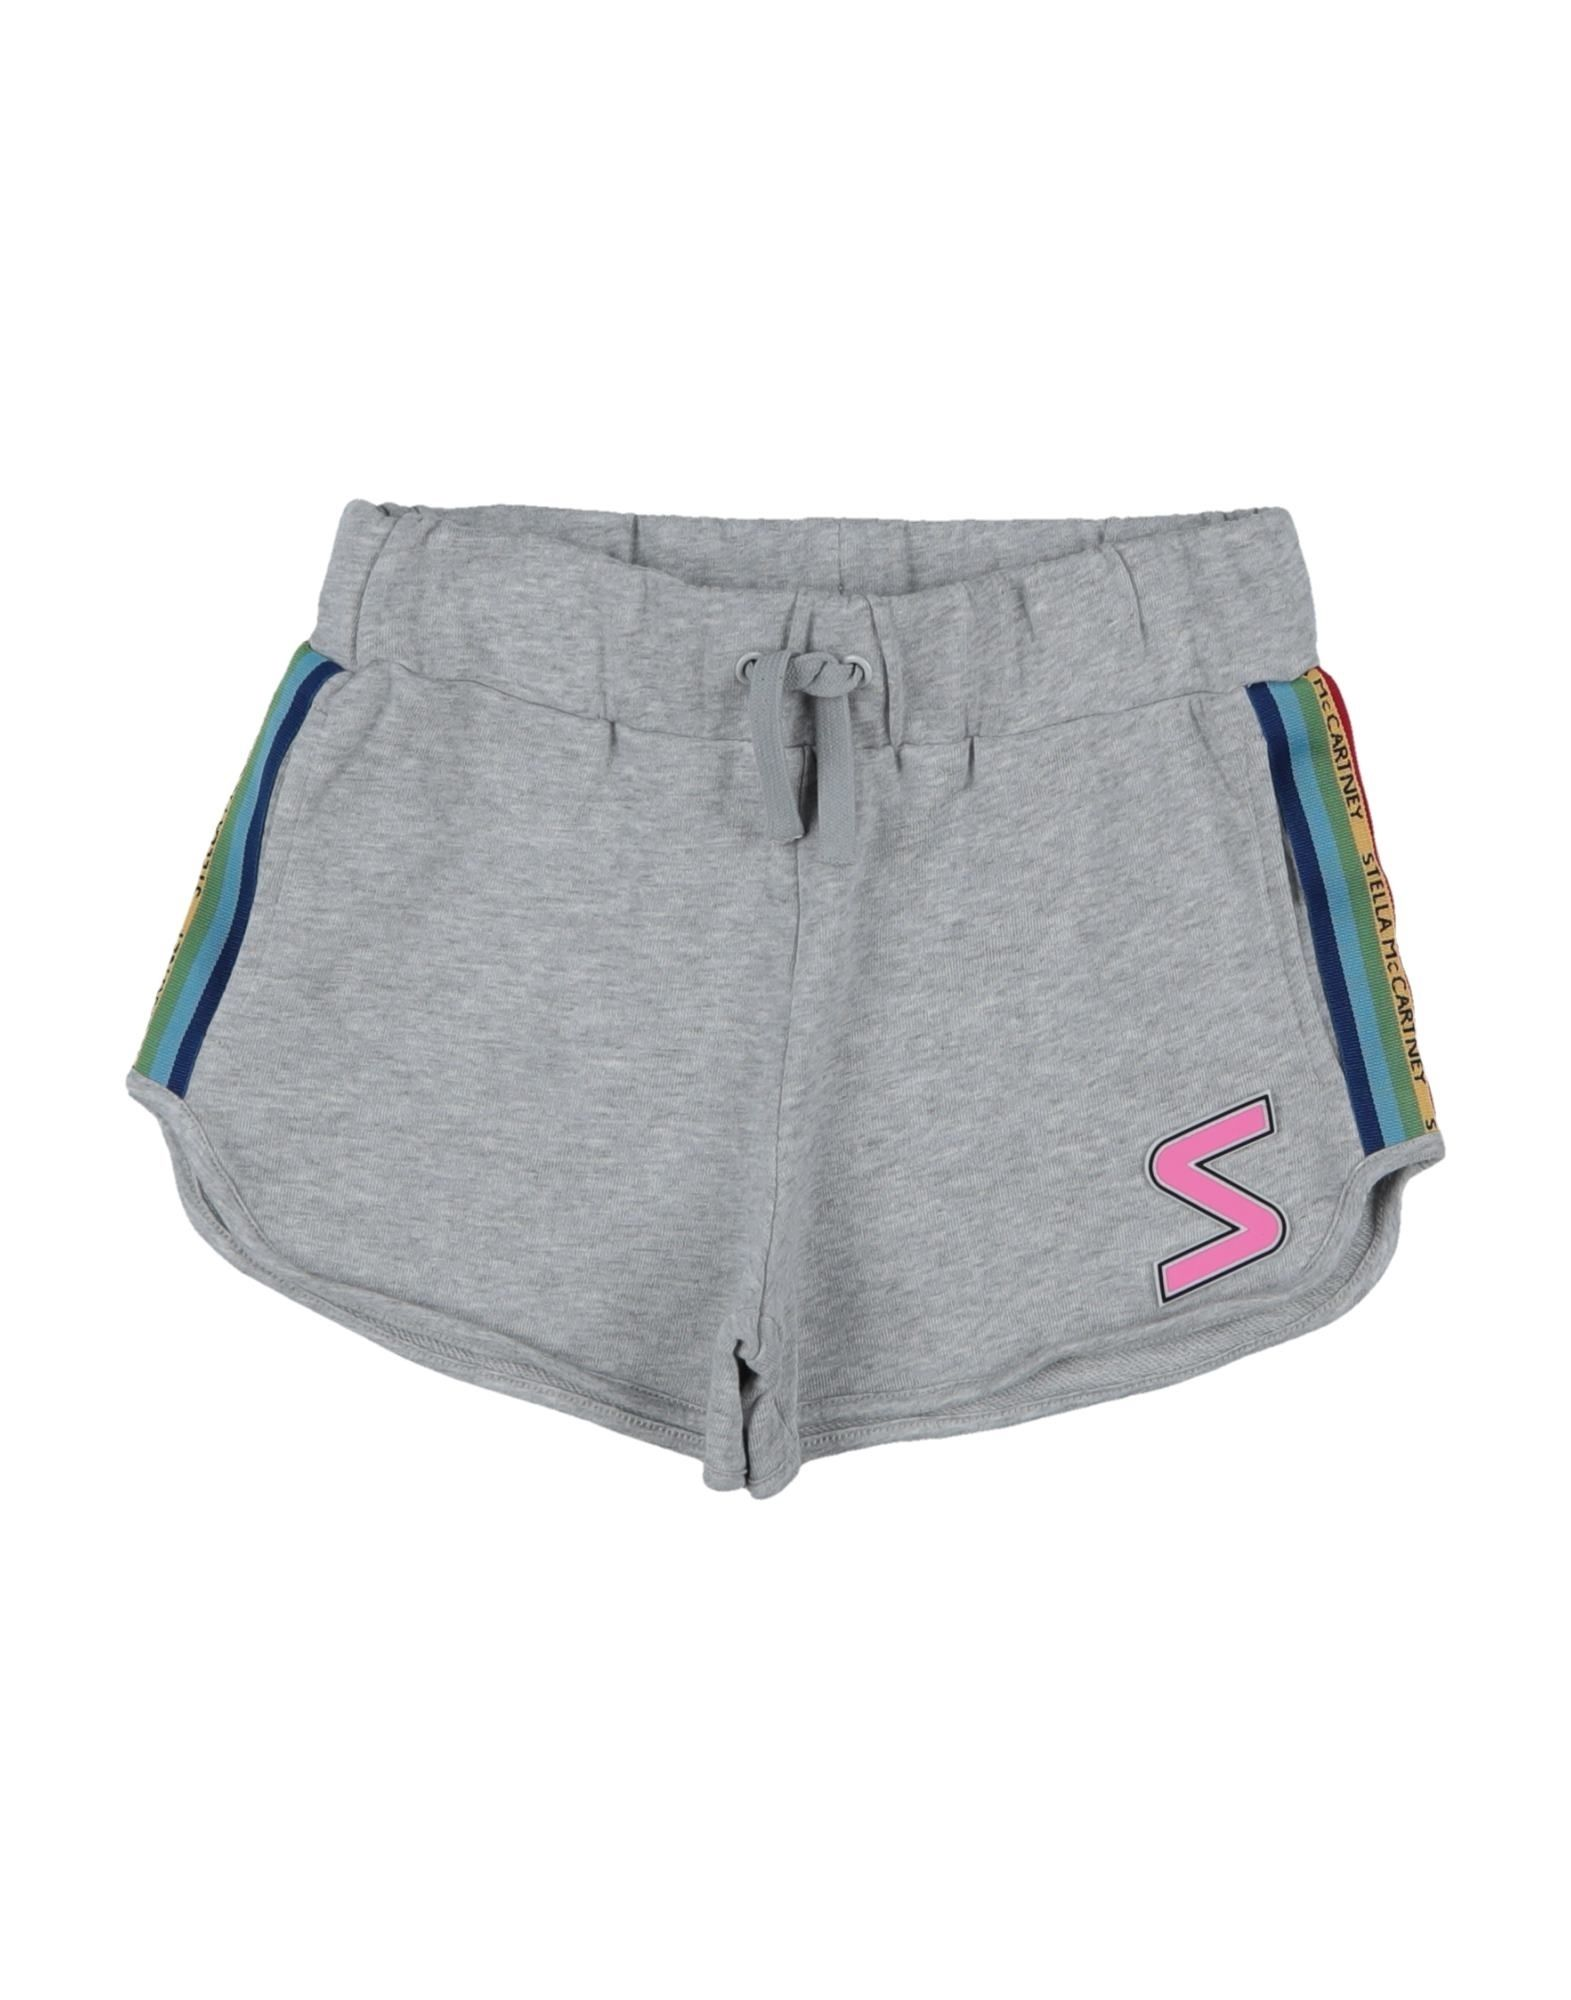 STELLA McCARTNEY KIDS Shorts. jersey, side seam stripes, logo, solid color, mid rise, slim fit, drawstring closure, multipockets, wash at 30degree c, do not dry clean, iron at 110degree c max, do not bleach, do not tumble dry. 100% Polyester